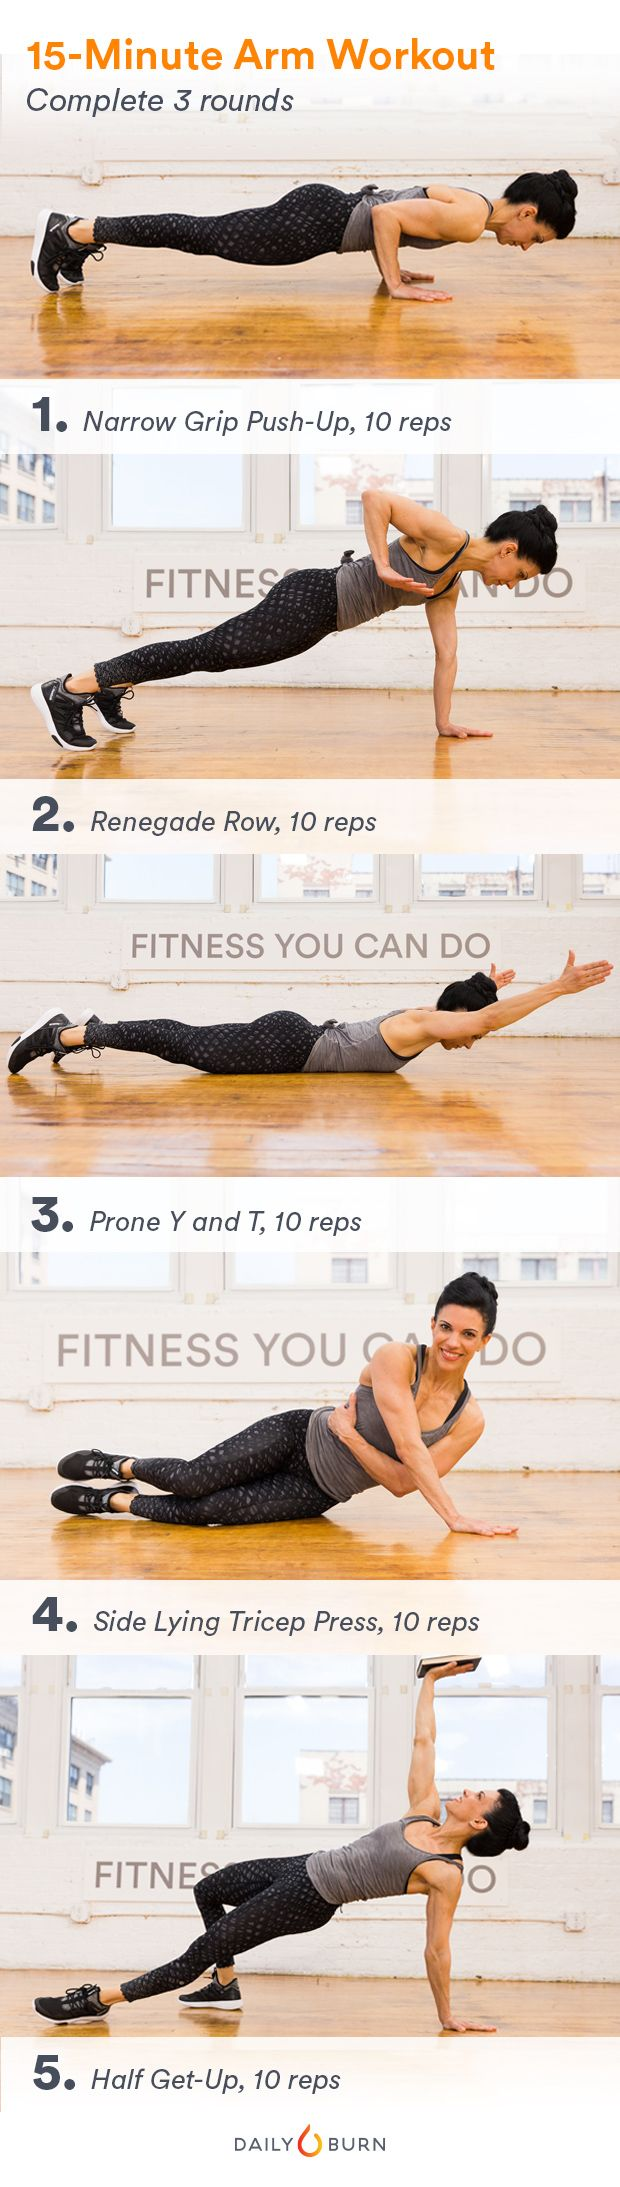 best images about Fitness on Pinterest